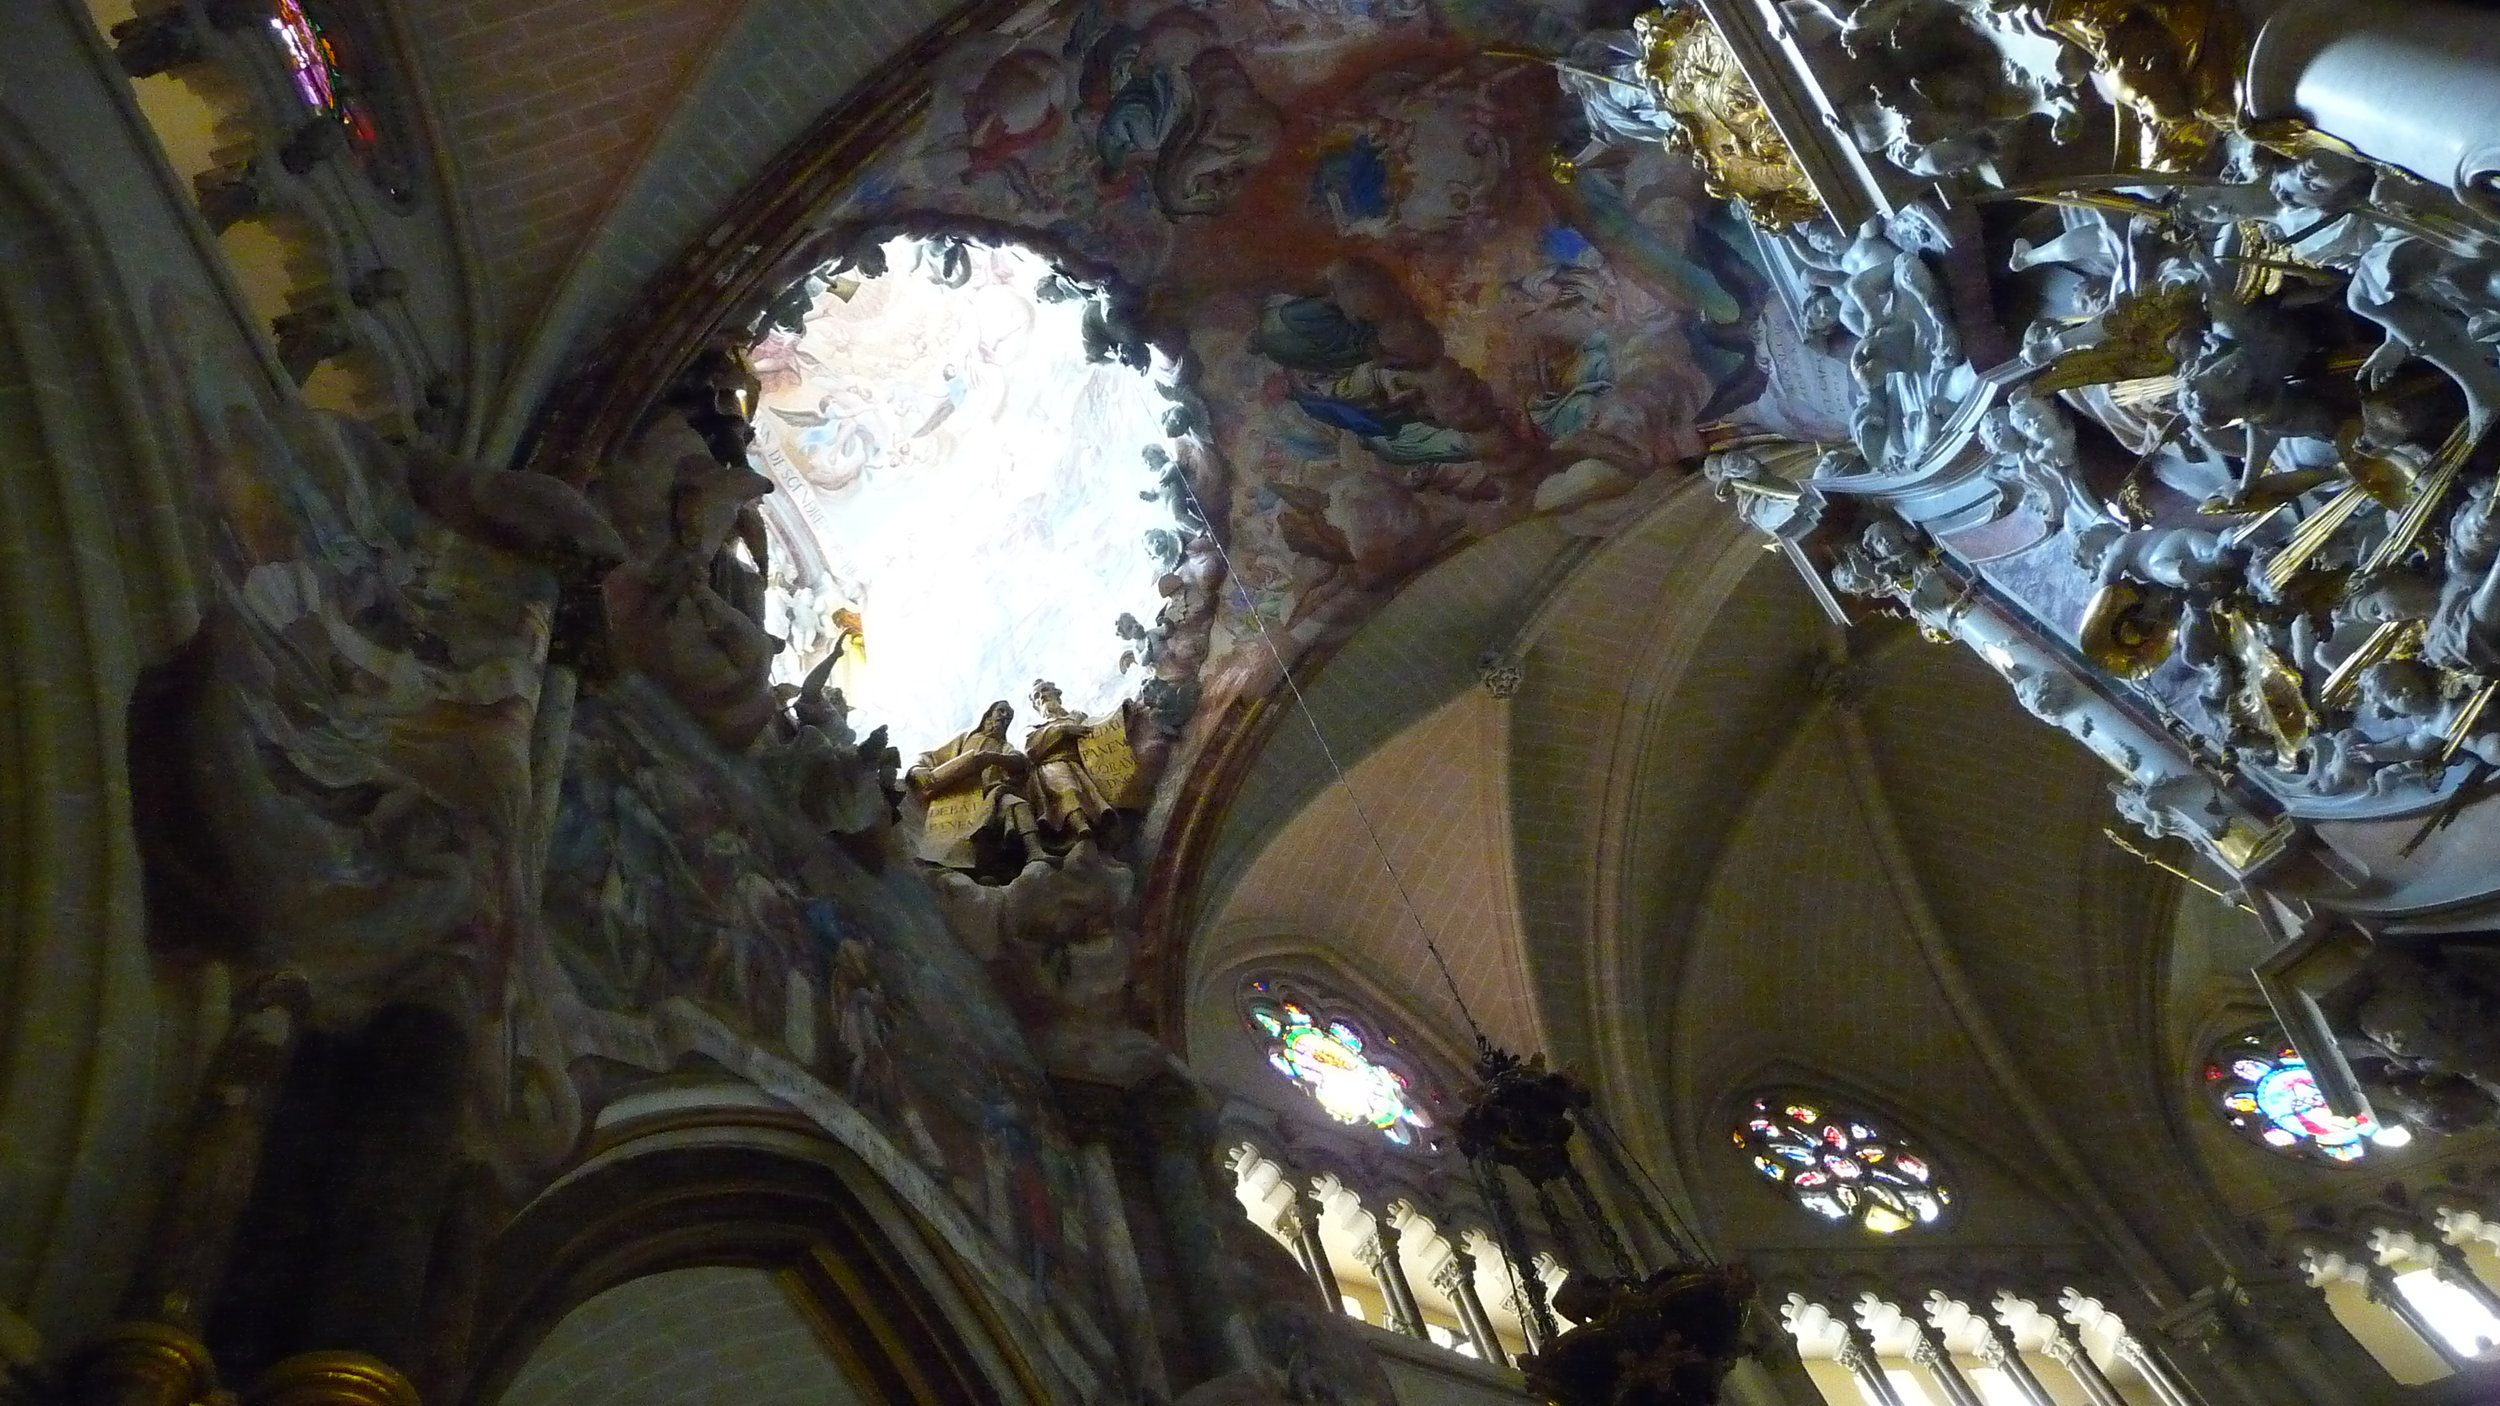 Transparente in Toledo's cathedral-framed with Baroque art